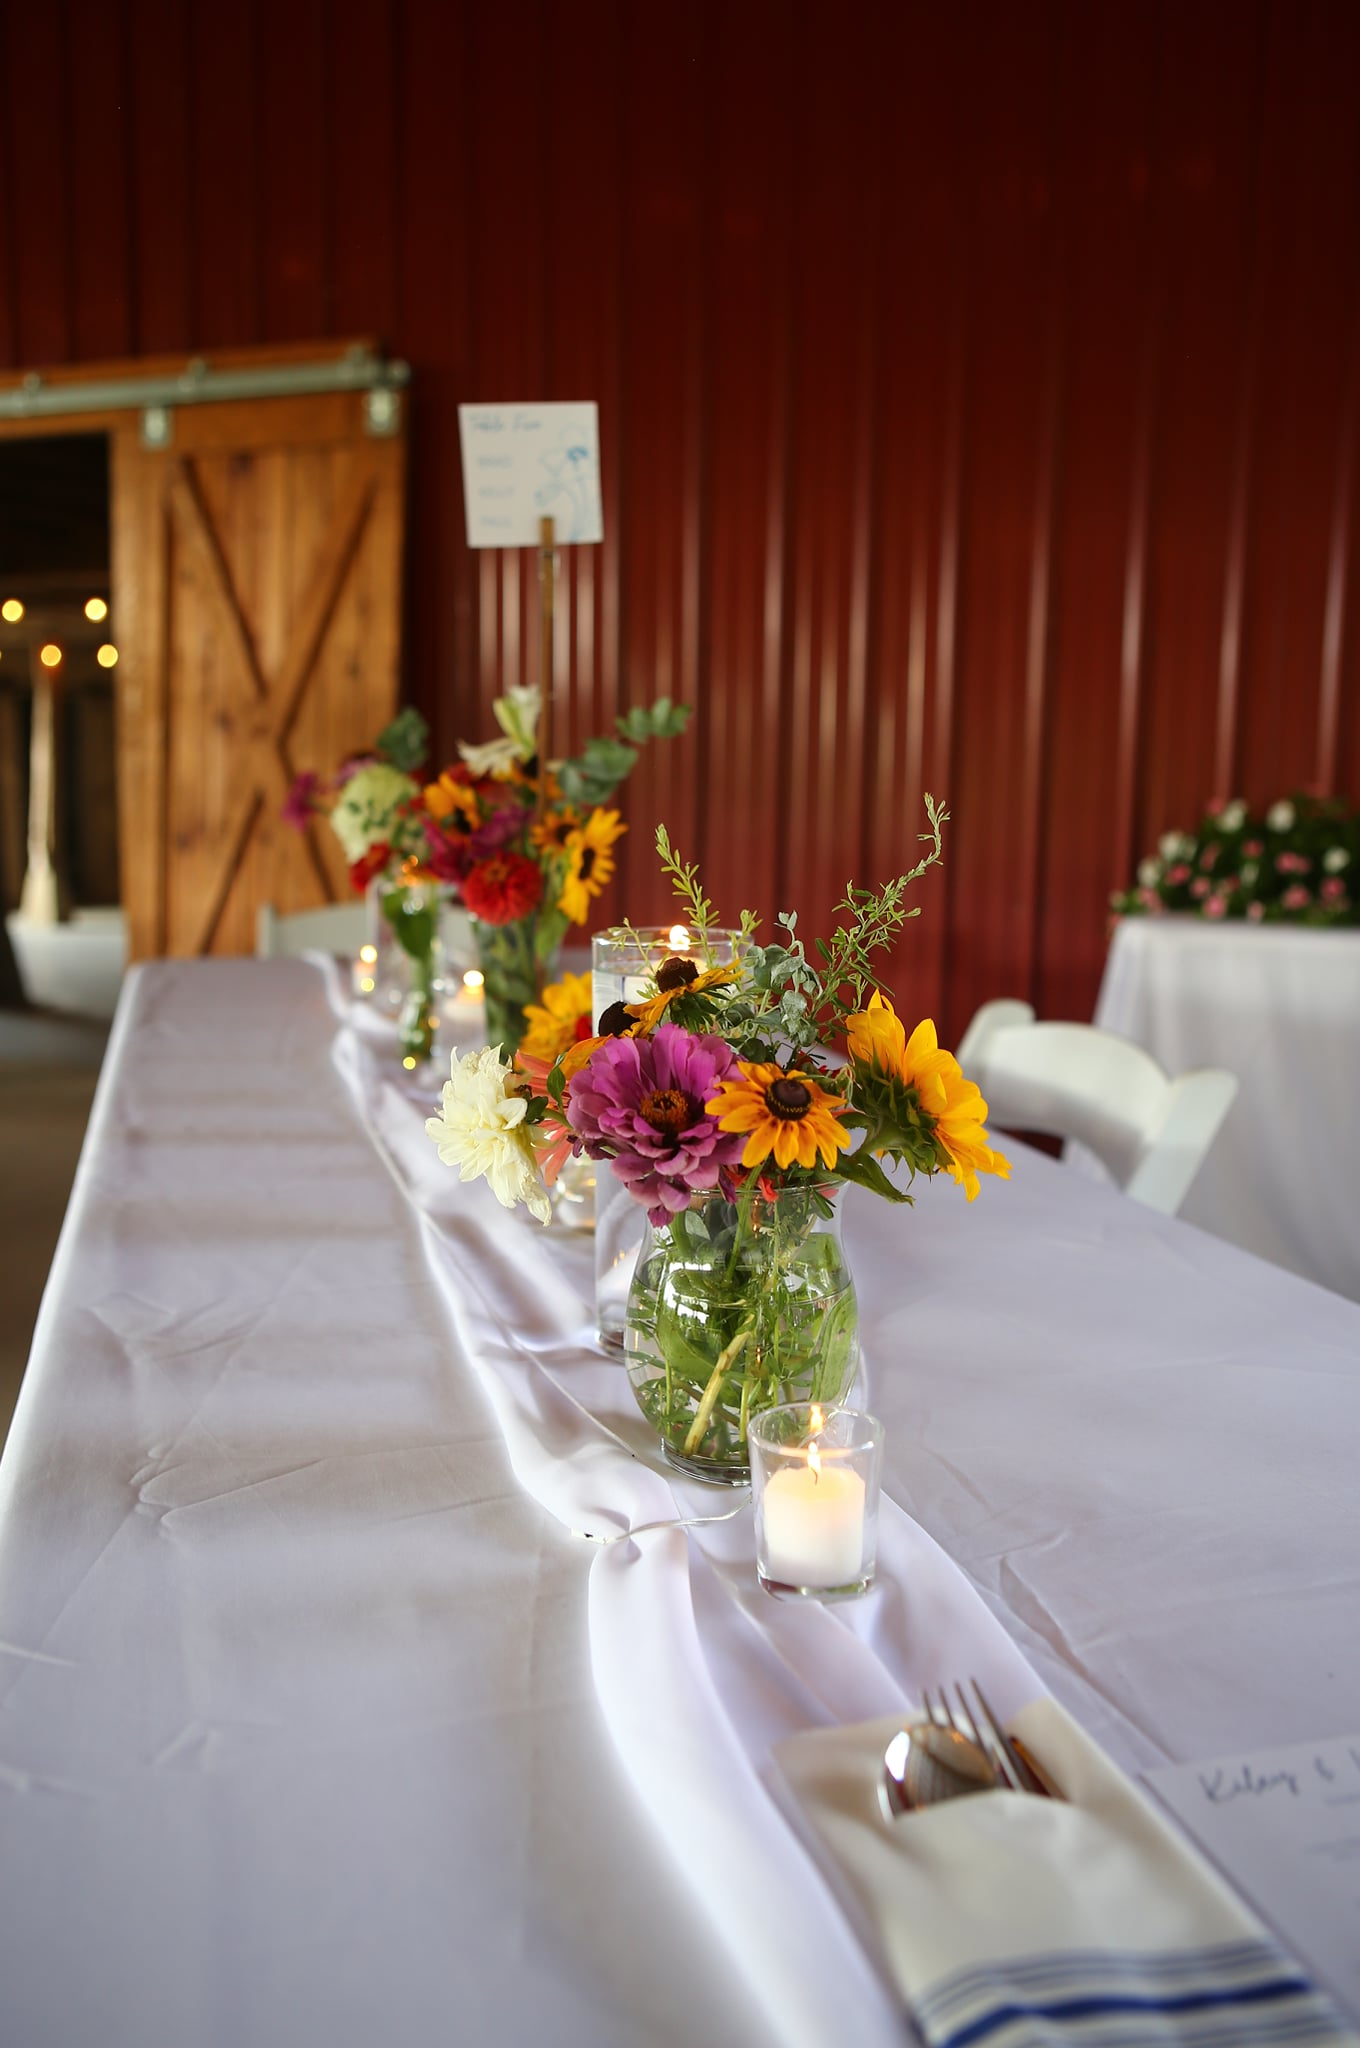 Cates Farm Table.jpg